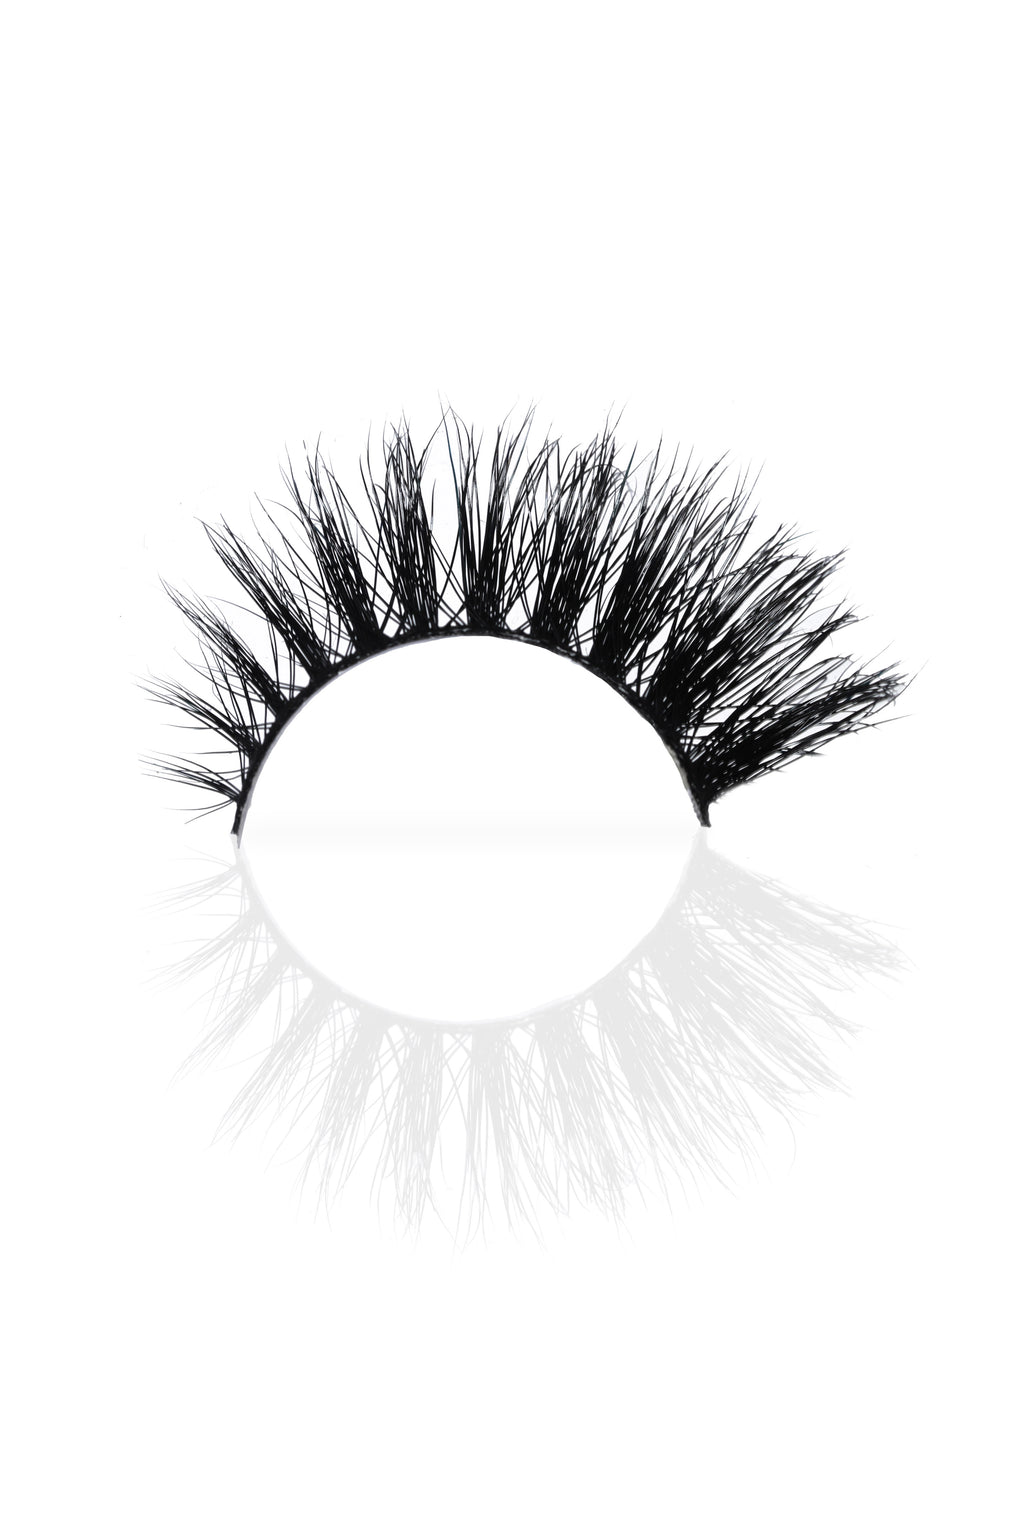 GB5 Luxury Mink Eyelashes